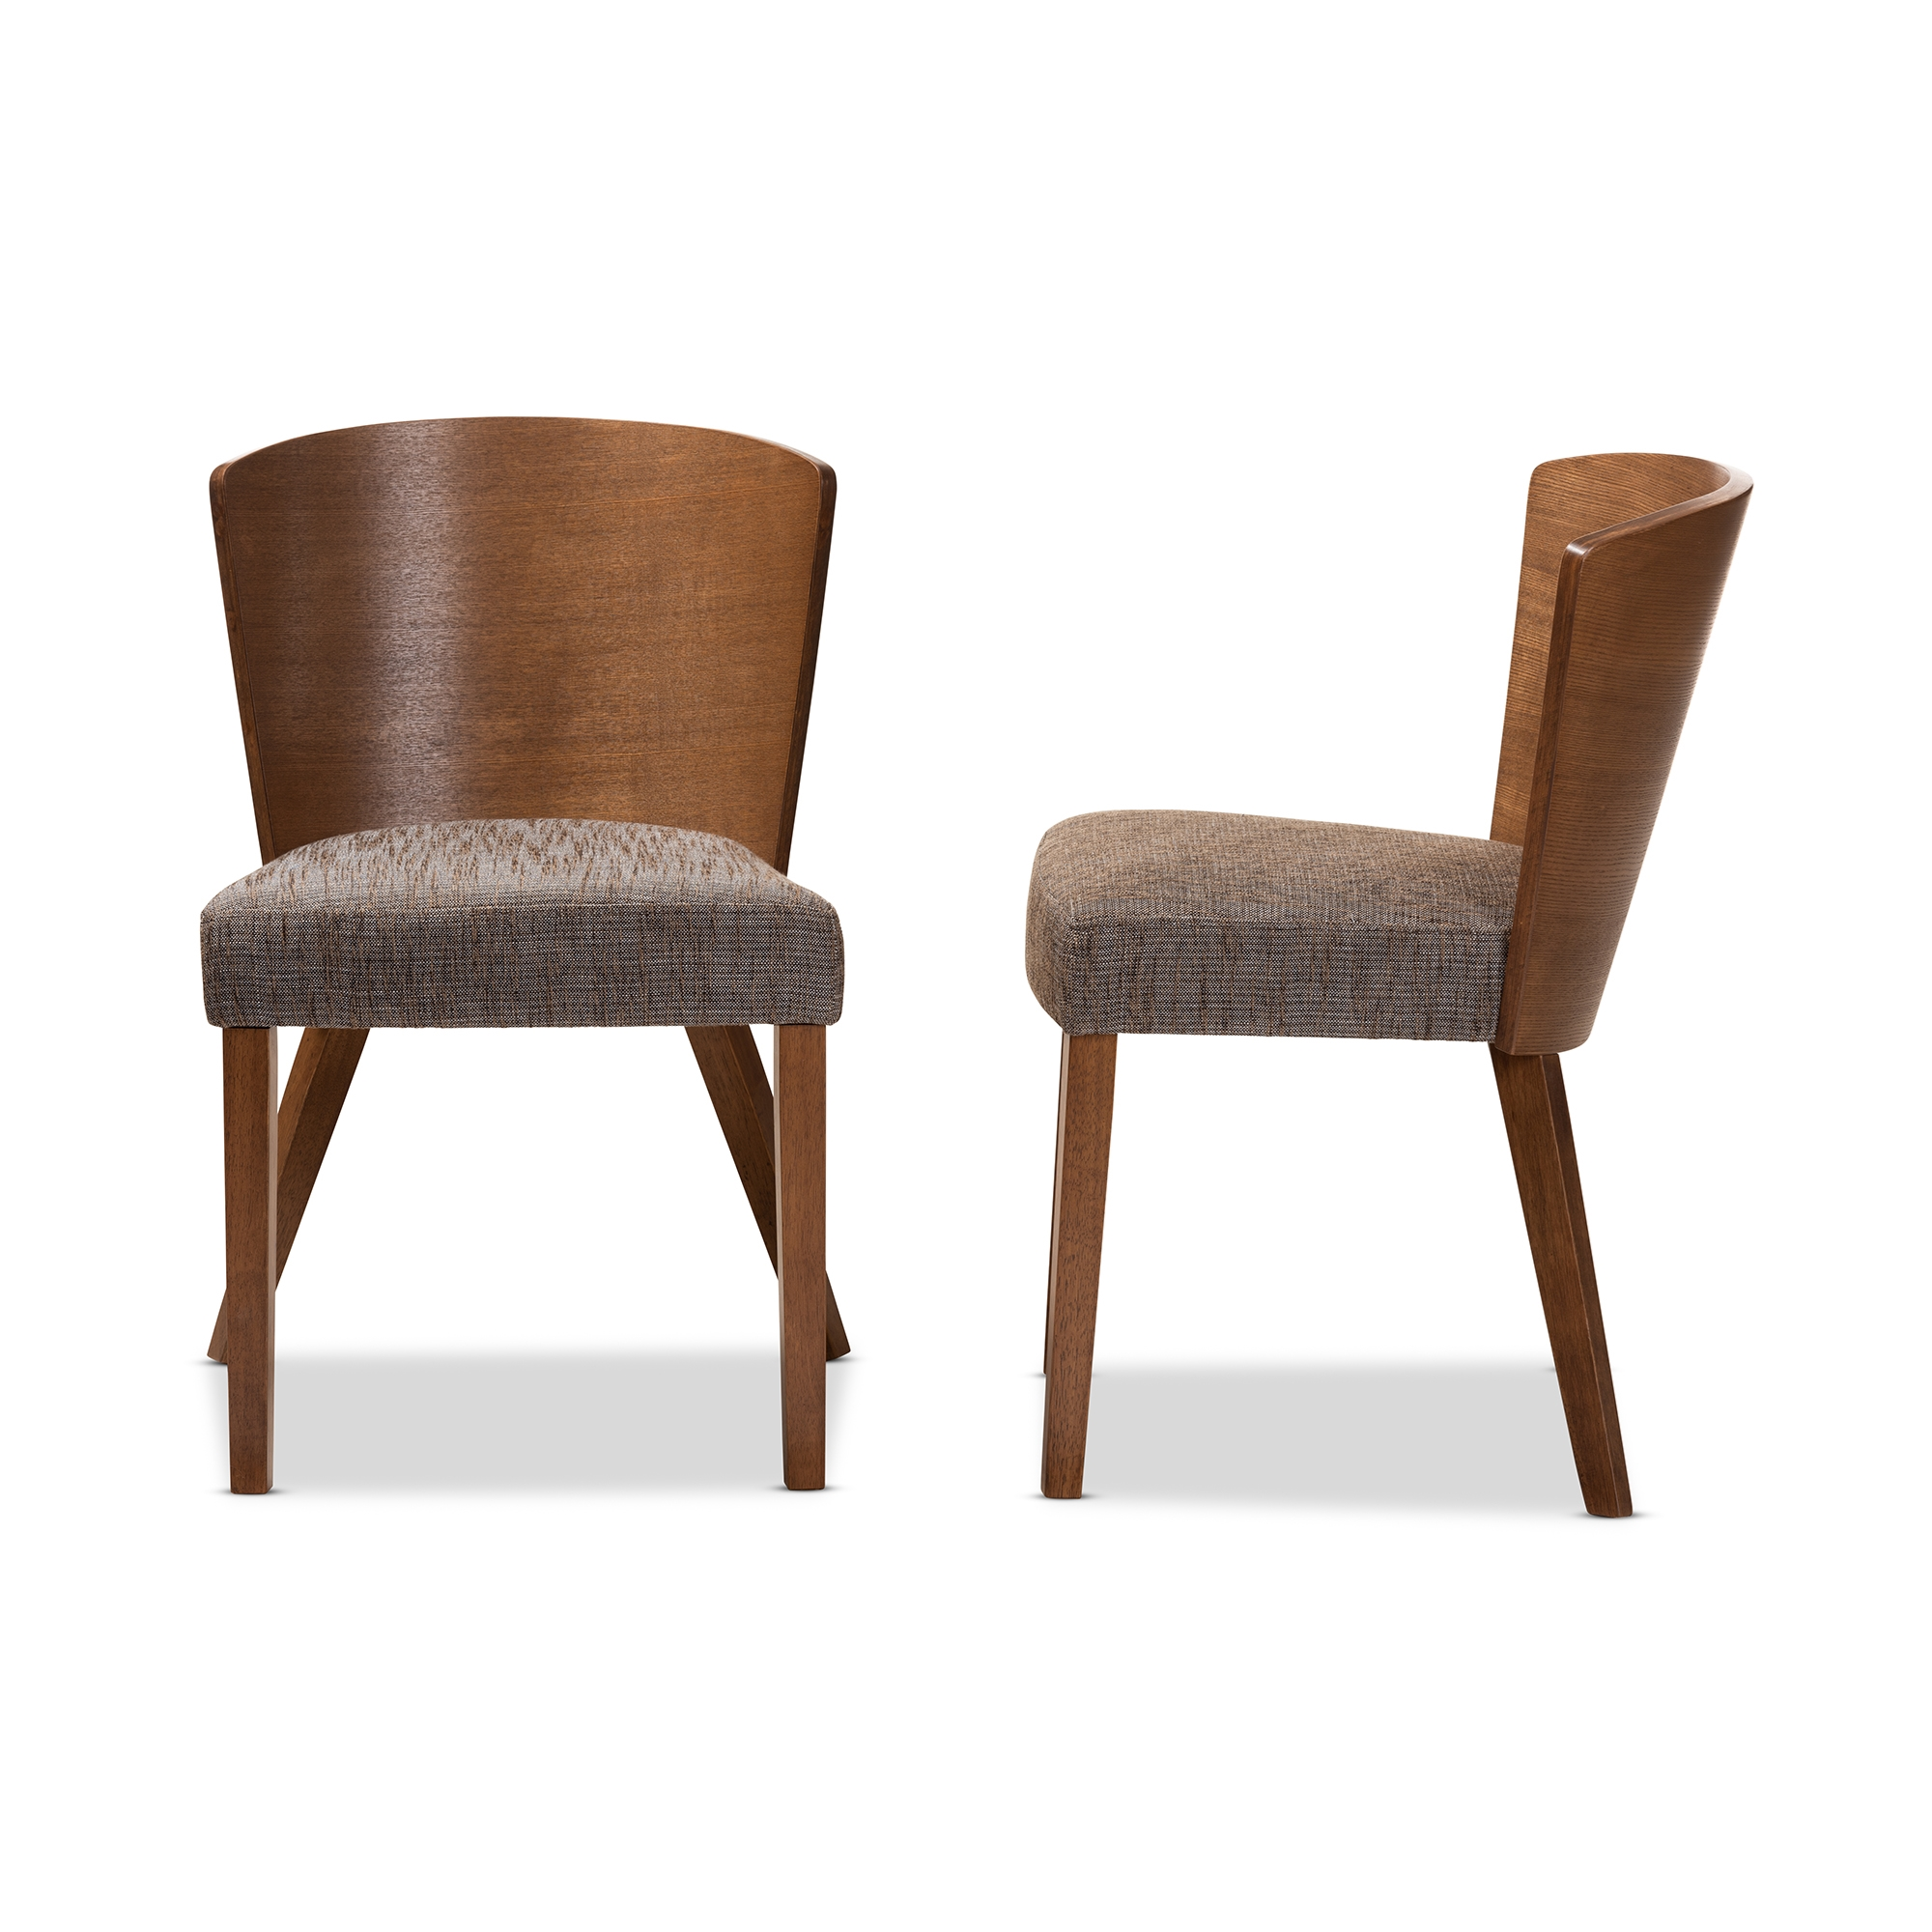 Dining Chair Set Of 2 Baxton Studio Sparrow Brown Wood Modern Dining Chair Set Of 2